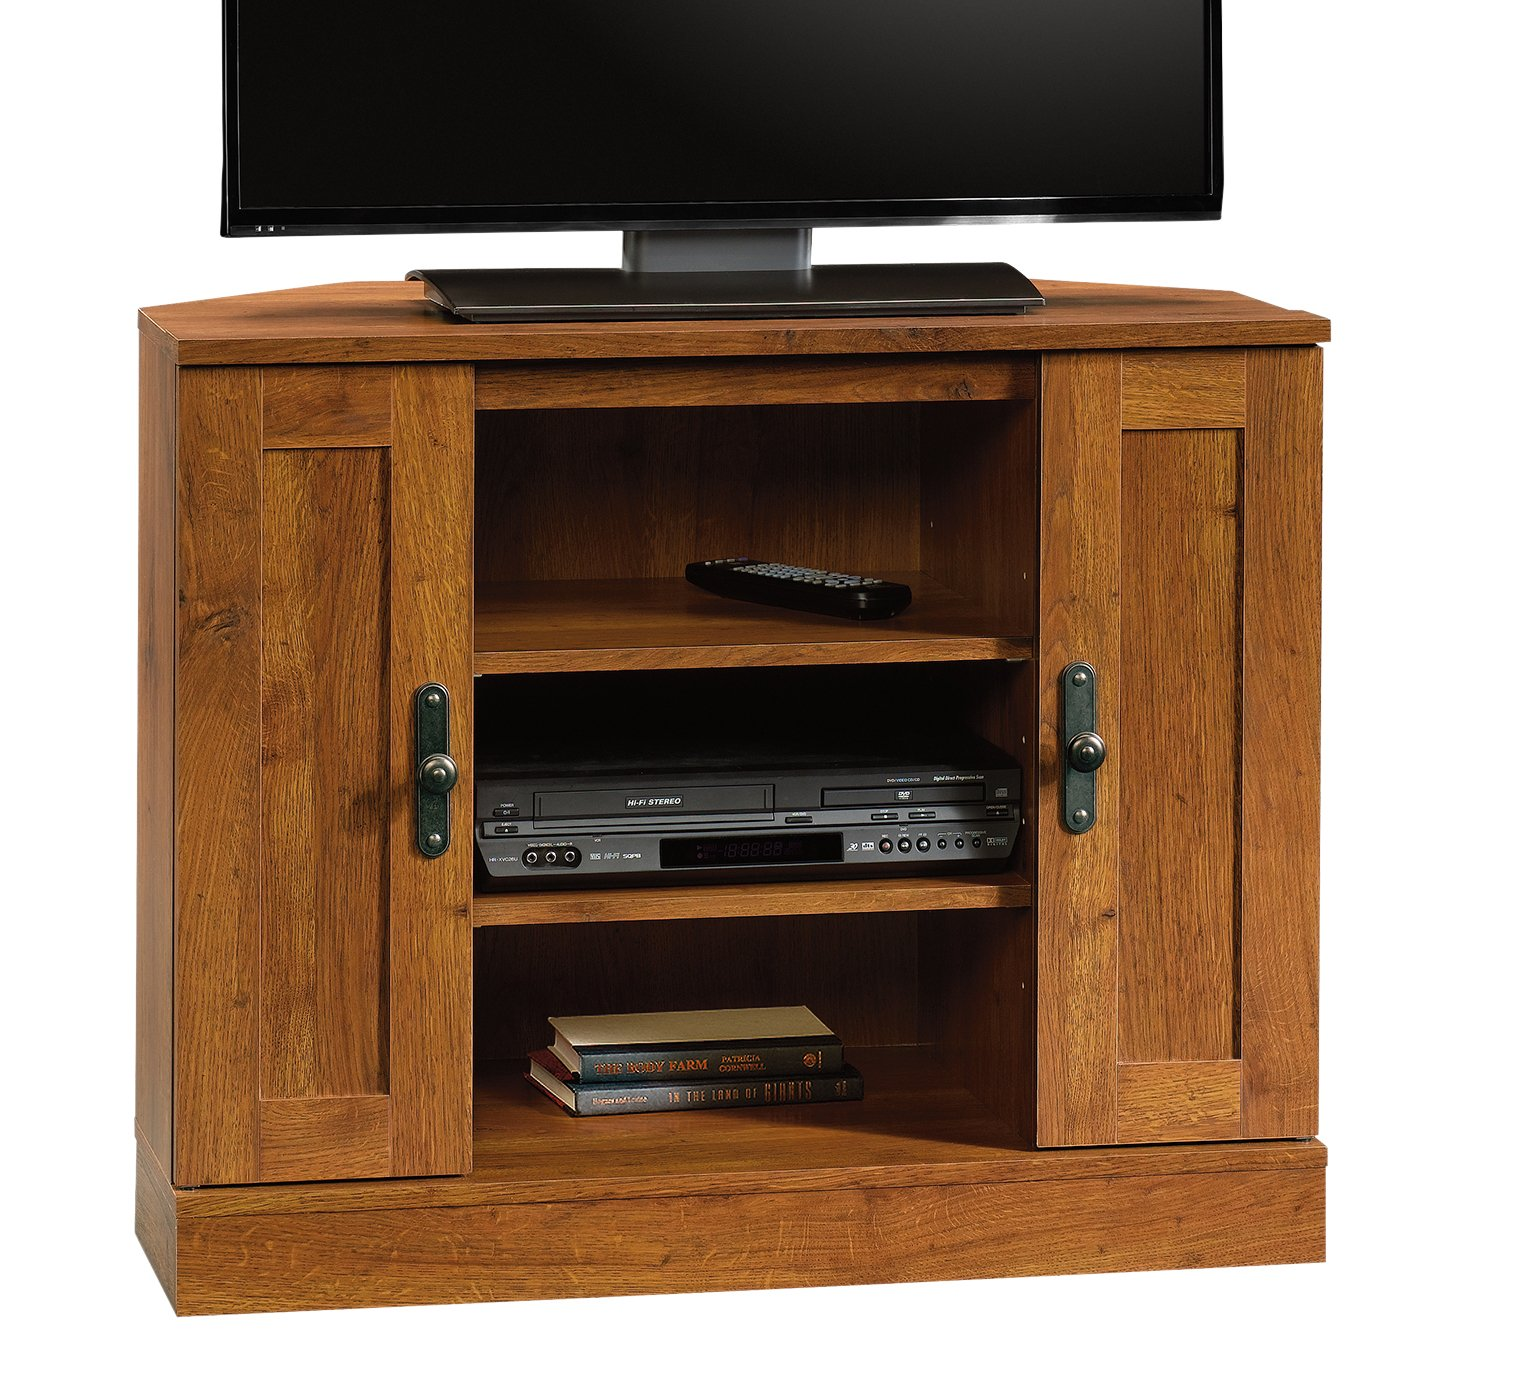 Sauder 404962 Harvest Mill Corner Entertainment Stand, For TV's up to 37'', Abbey Oak finish by Sauder